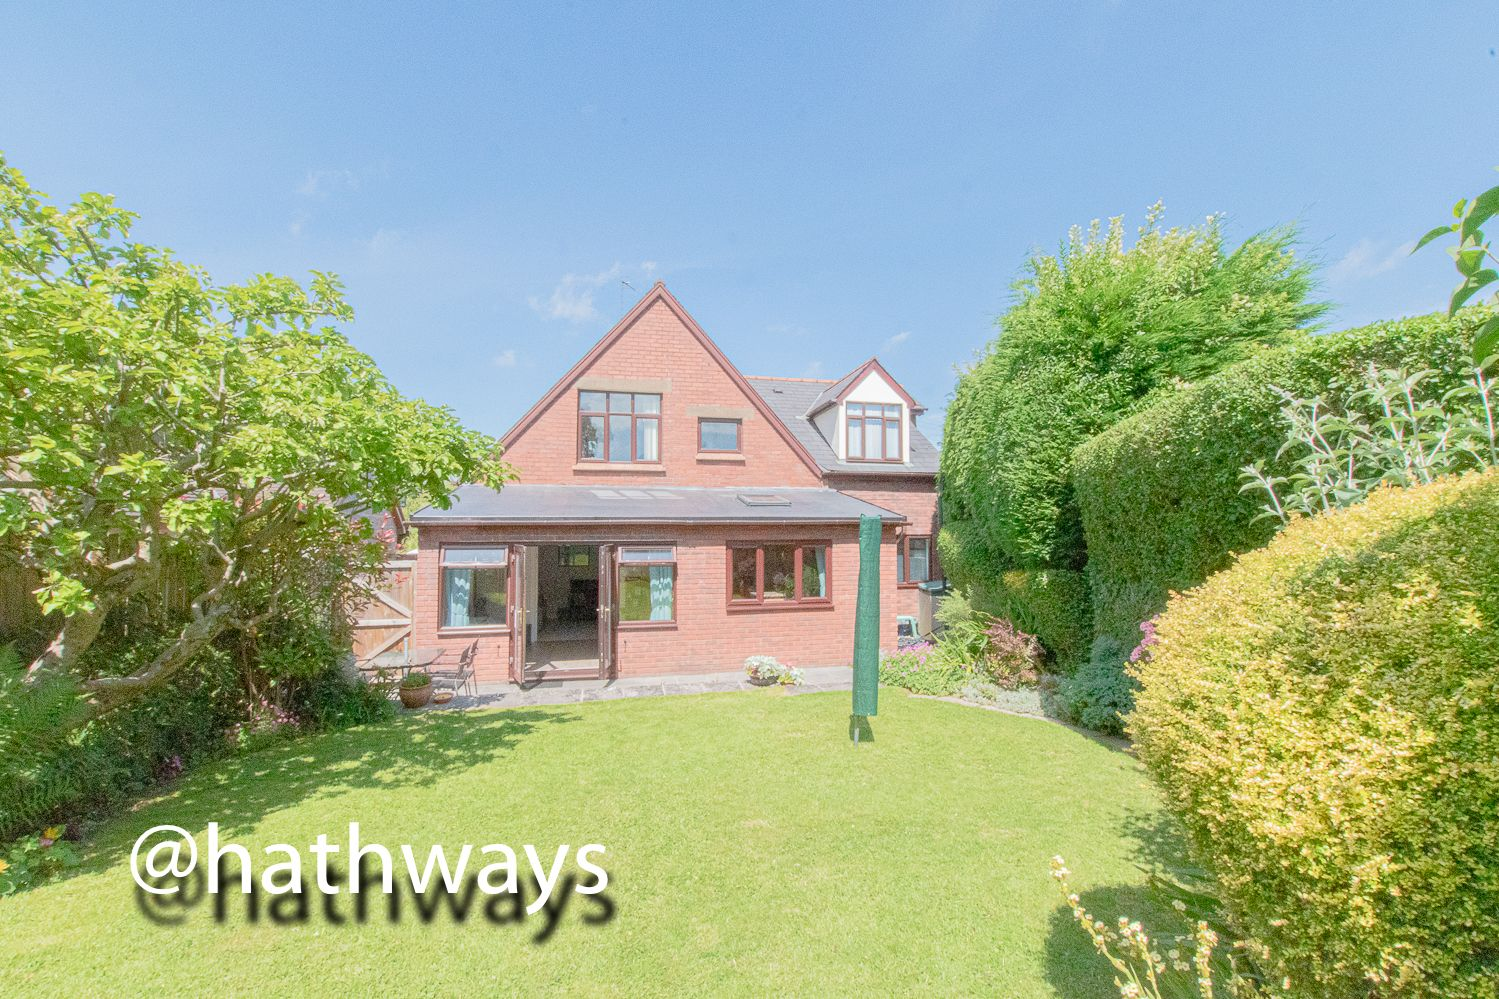 4 bed house for sale in Ashford Close South 2